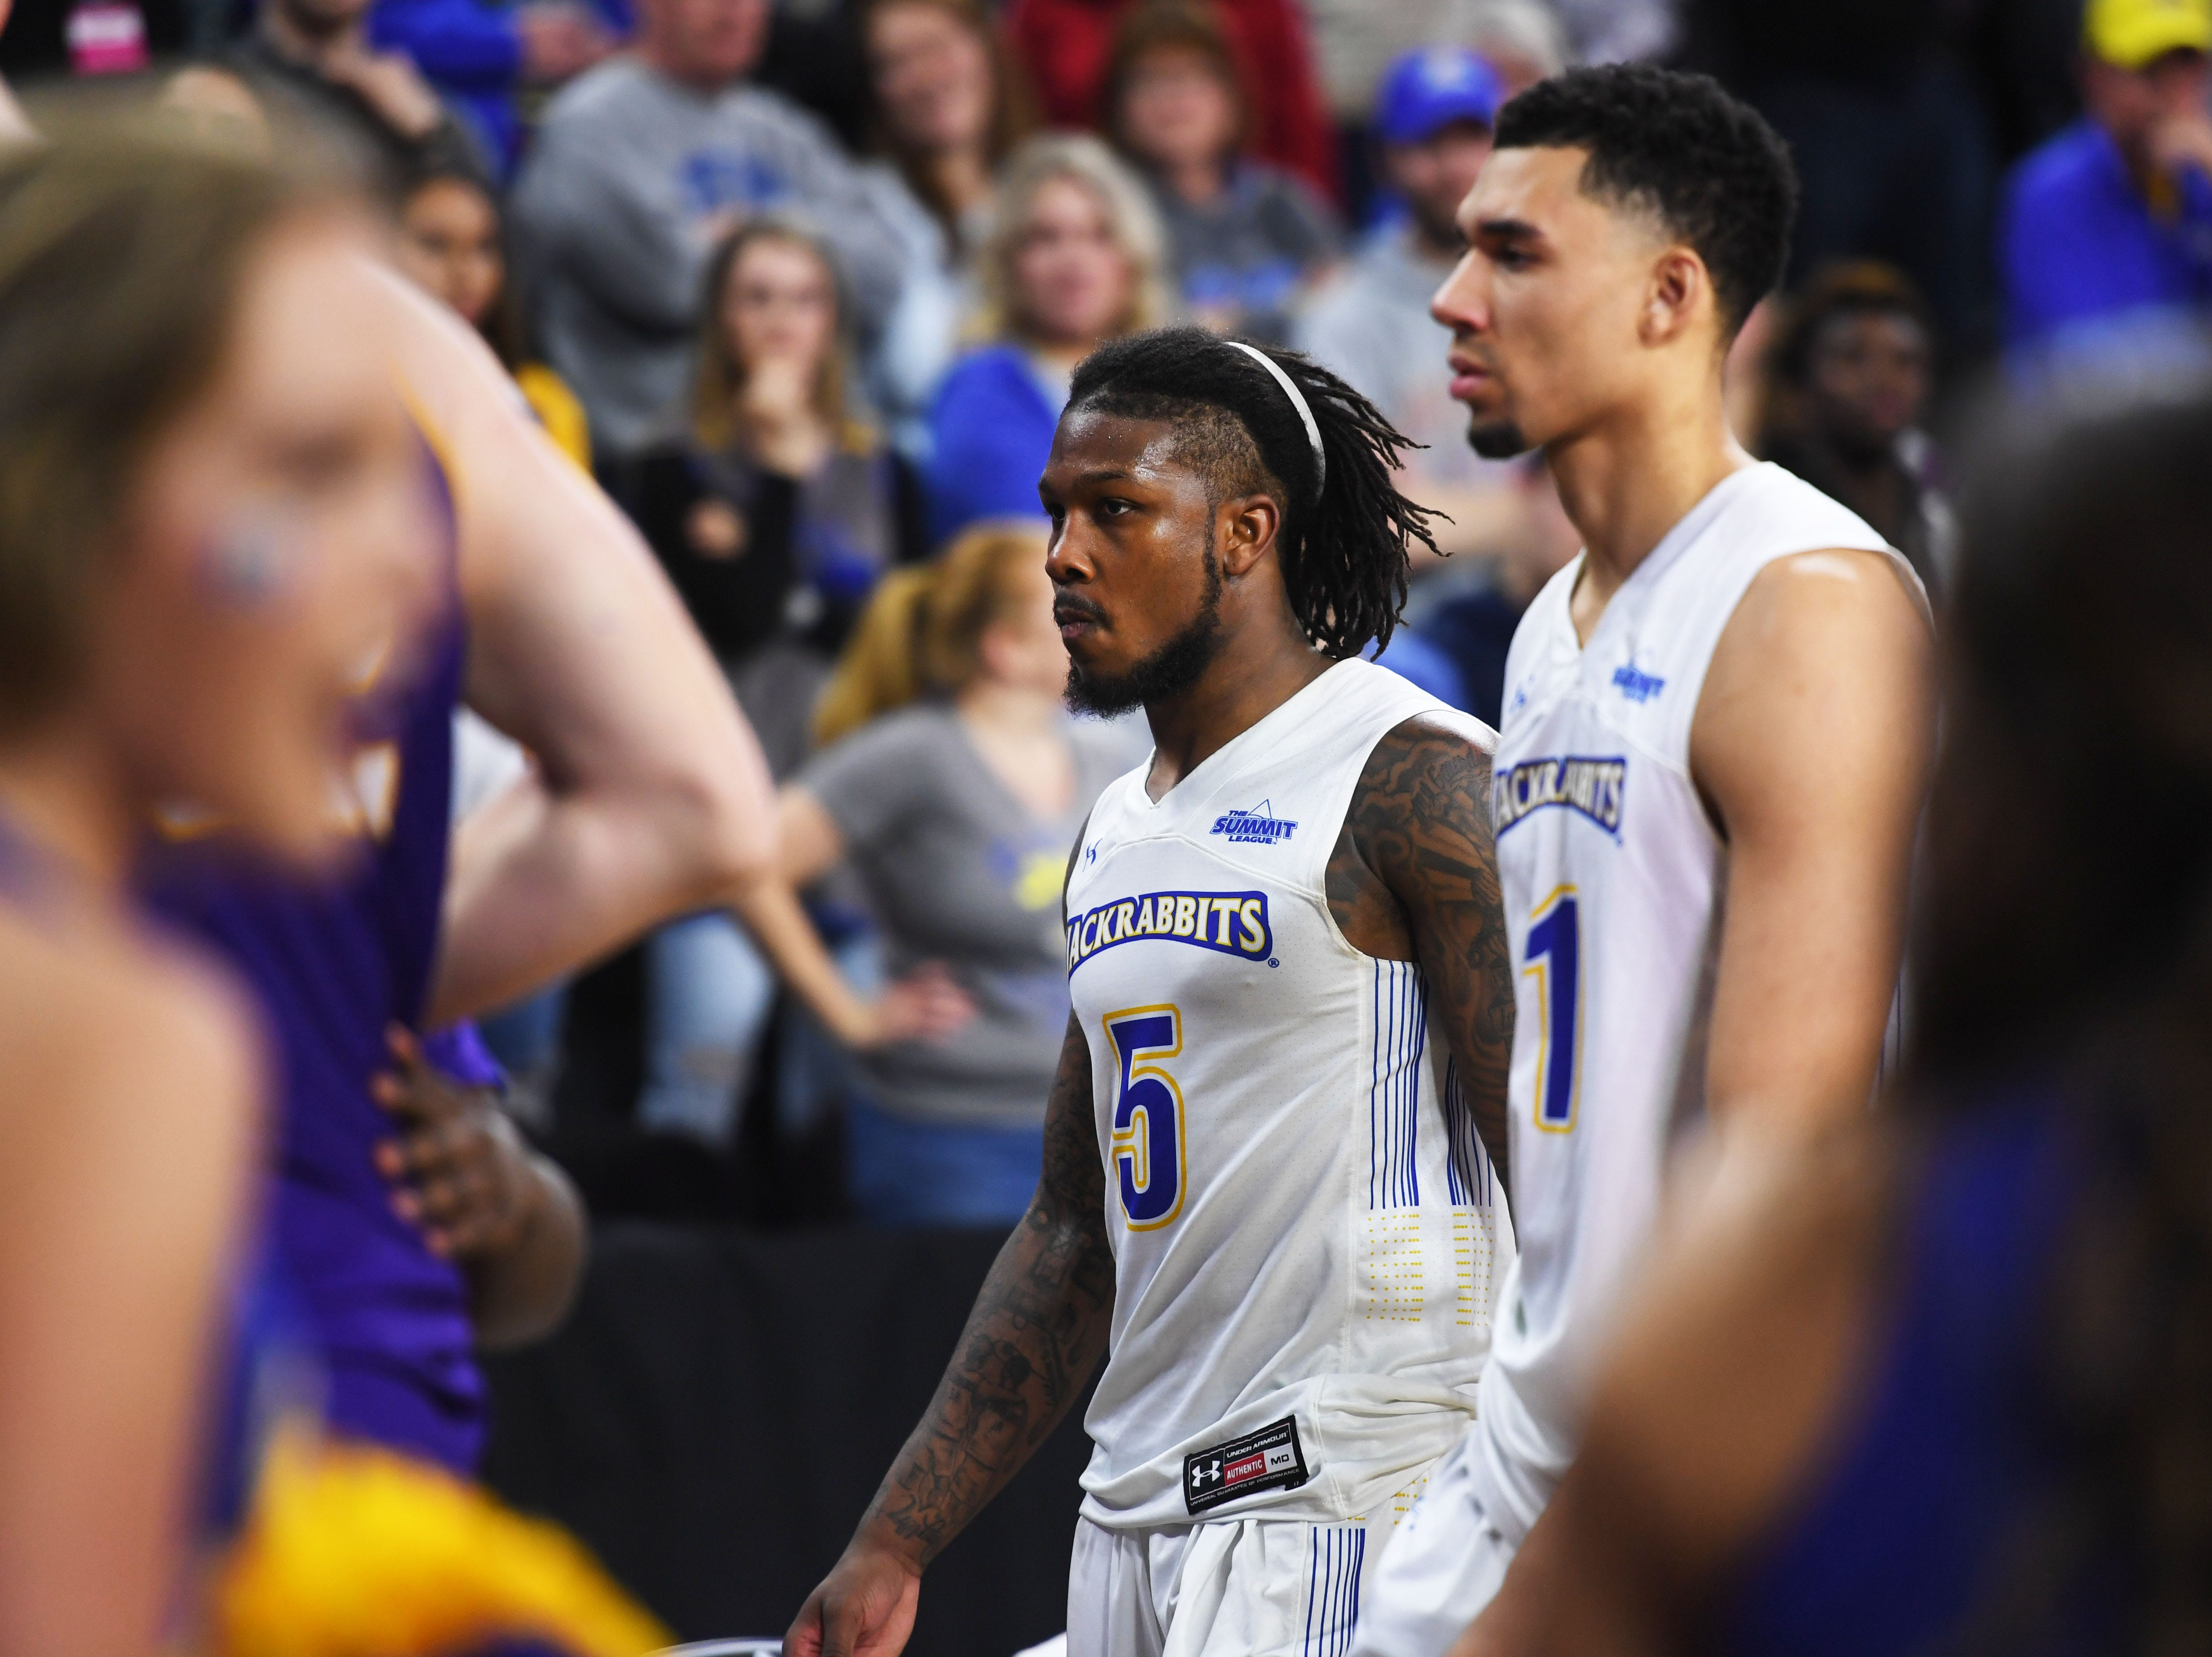 SDSU's David Jenkins (5) and Skyler Flatten (1) walk off the court after their lose against Western Illinois Saturday, March 9, in the Summit League tournament at the Denny Sanford Premier Center in Sioux Falls.